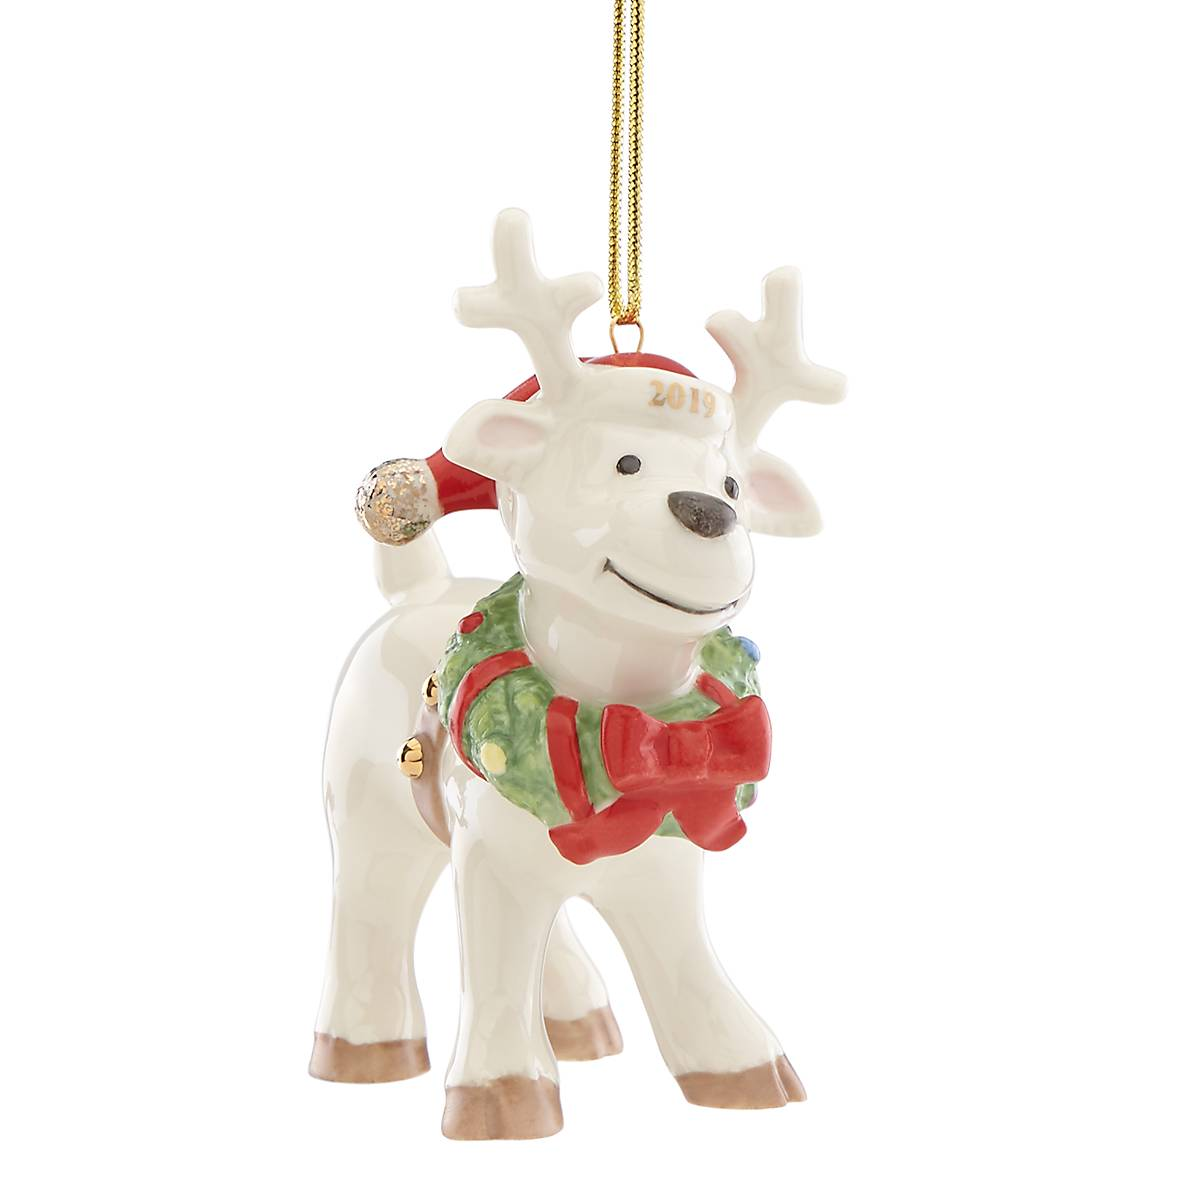 Image of 2019 Ralph The Reindeer Ornament by Lenox